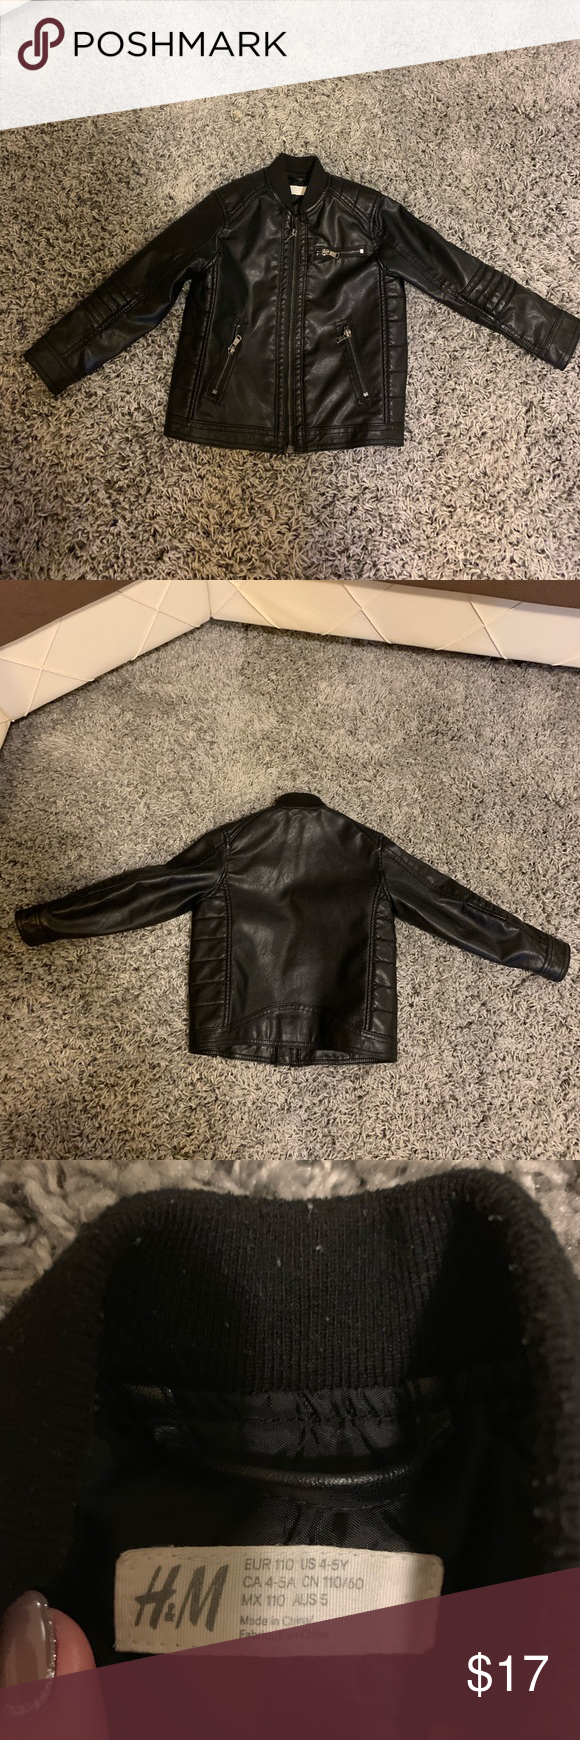 H And M Boys 4 5 Faux Leather Motorcycle Jacket Leather Motorcycle Jacket Faux Leather Motorcycle Jacket Faux Leather [ 1740 x 580 Pixel ]